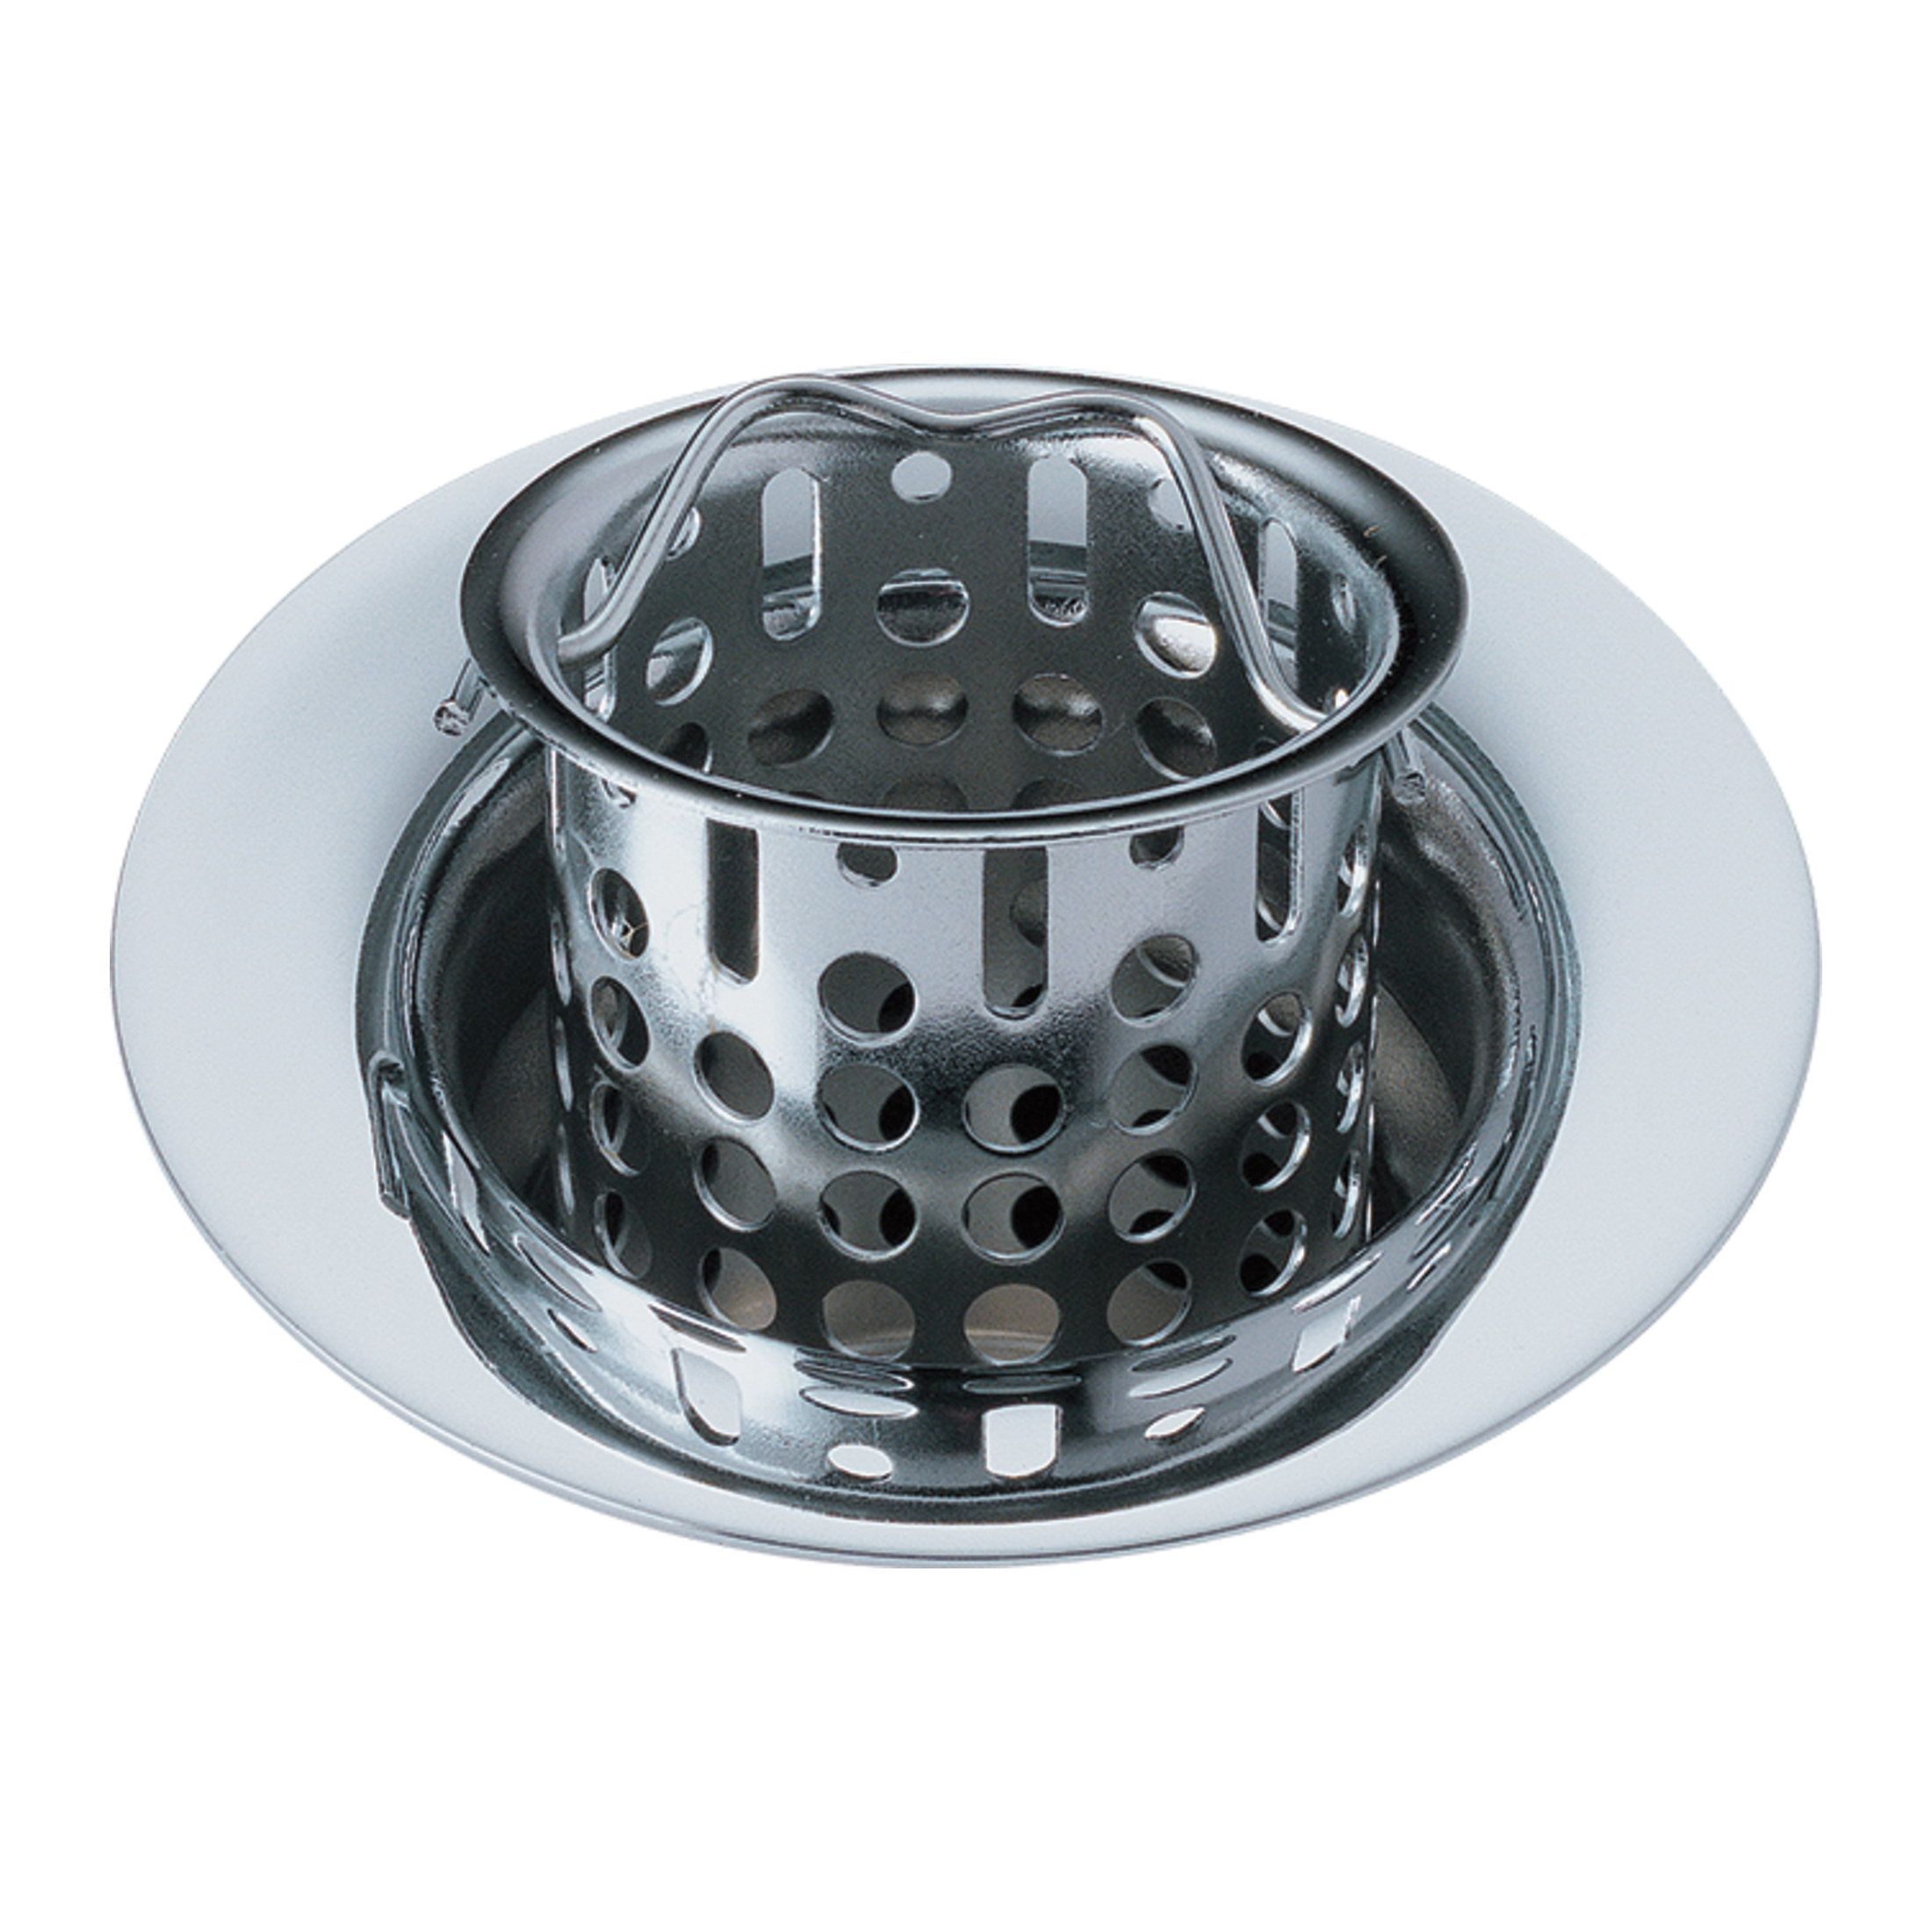 Brizo® 69051-PC Flange and Strainer, 1-1/2 x 11-1/2 in Nominal, NPSM, Brass, Chrome Plated, Import